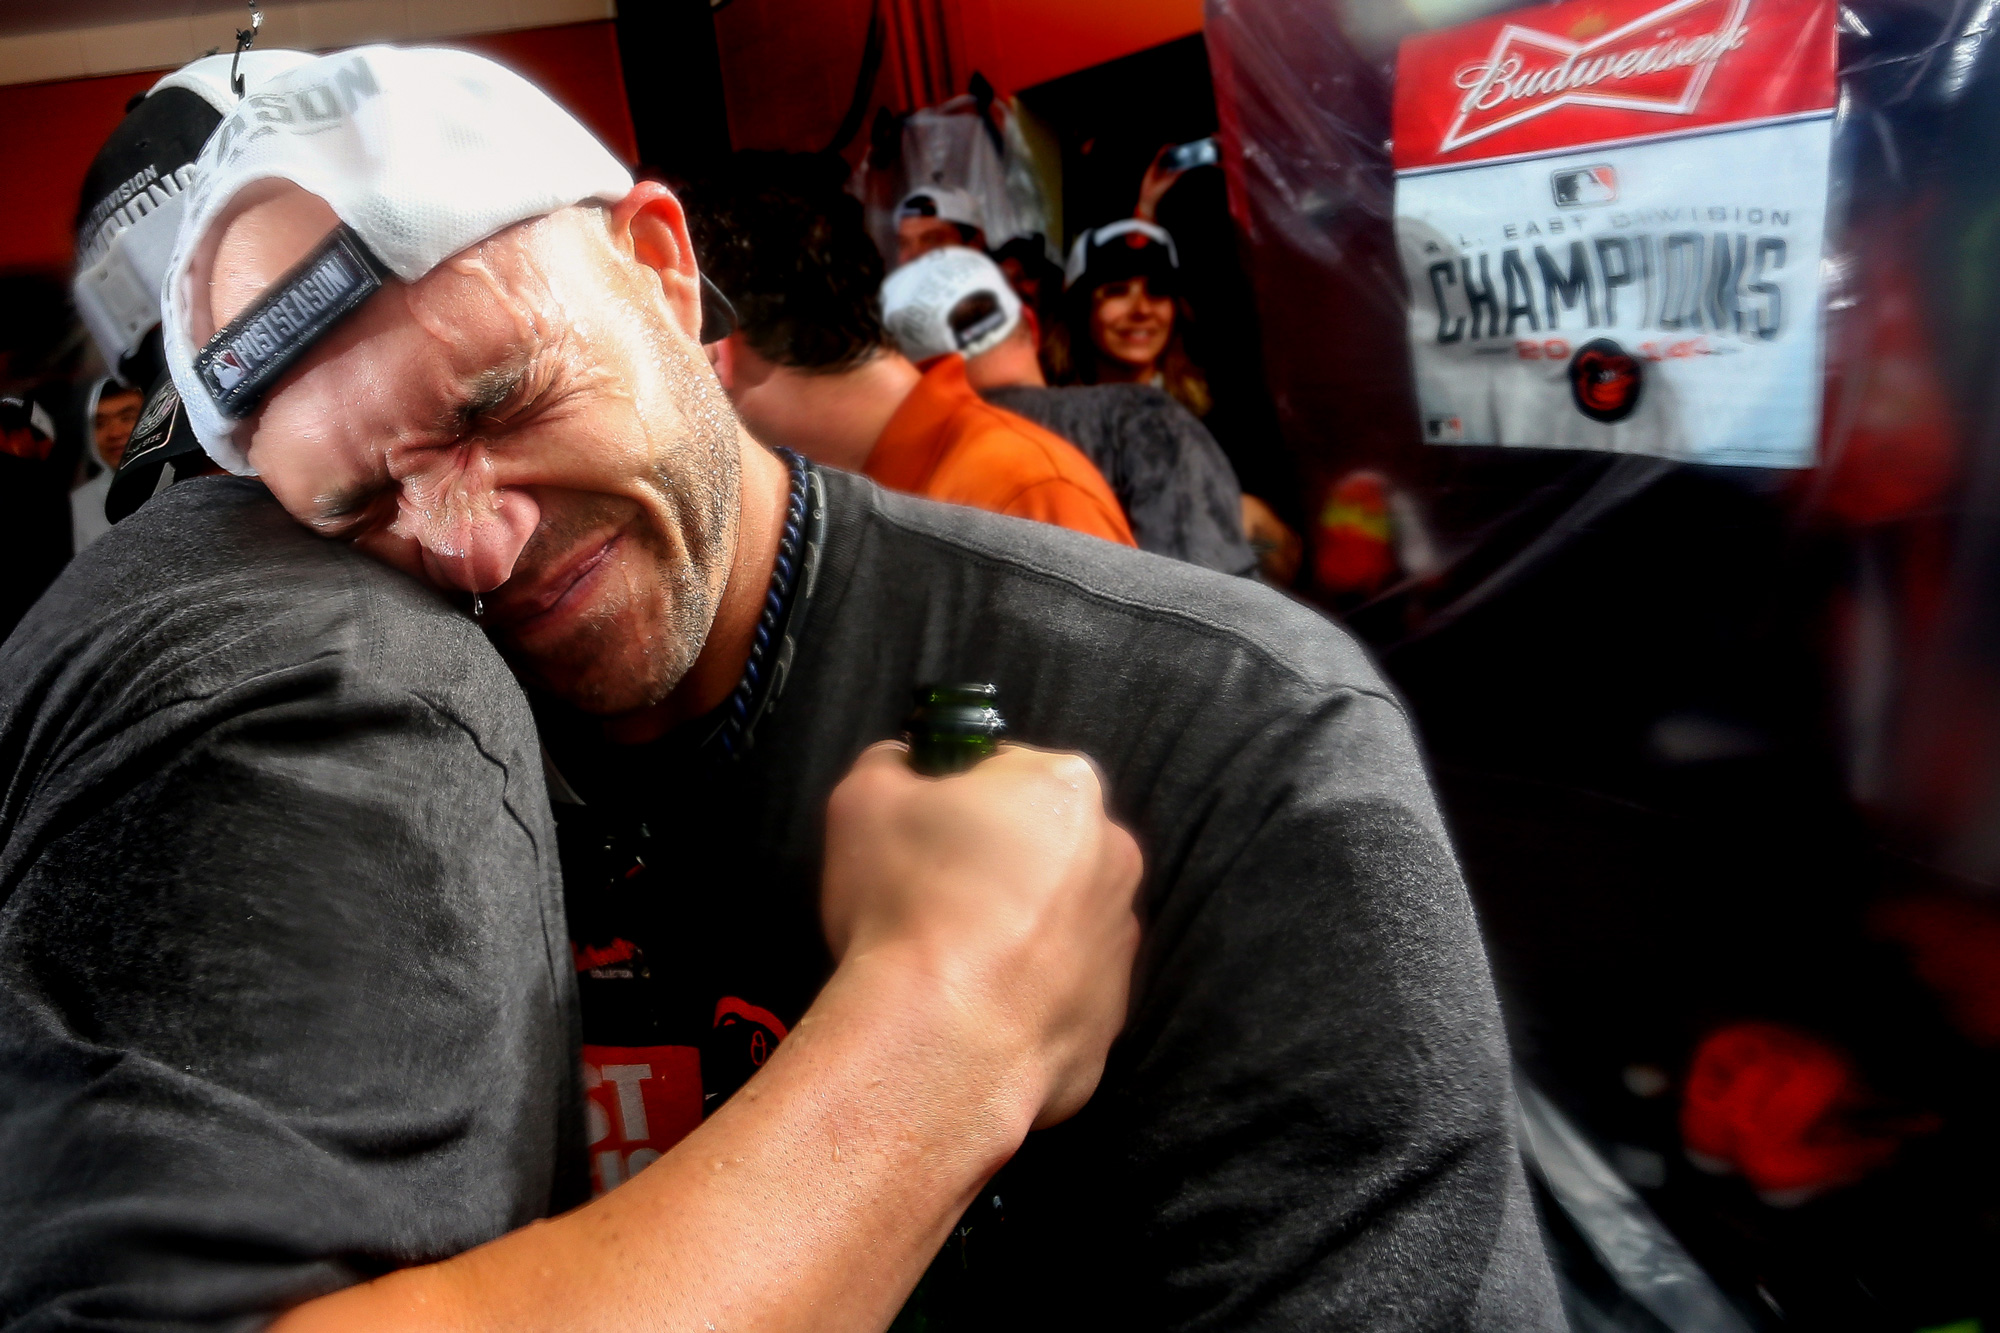 First baseman Steve Pearce of the Baltimore Orioles celebrates in the clubhouse after the Orioles defeated the Toronto Blue Jays to clinch the American League East Division at Oriole Park at Camden Yards in Baltimore, Maryland on Sept. 16, 2014.